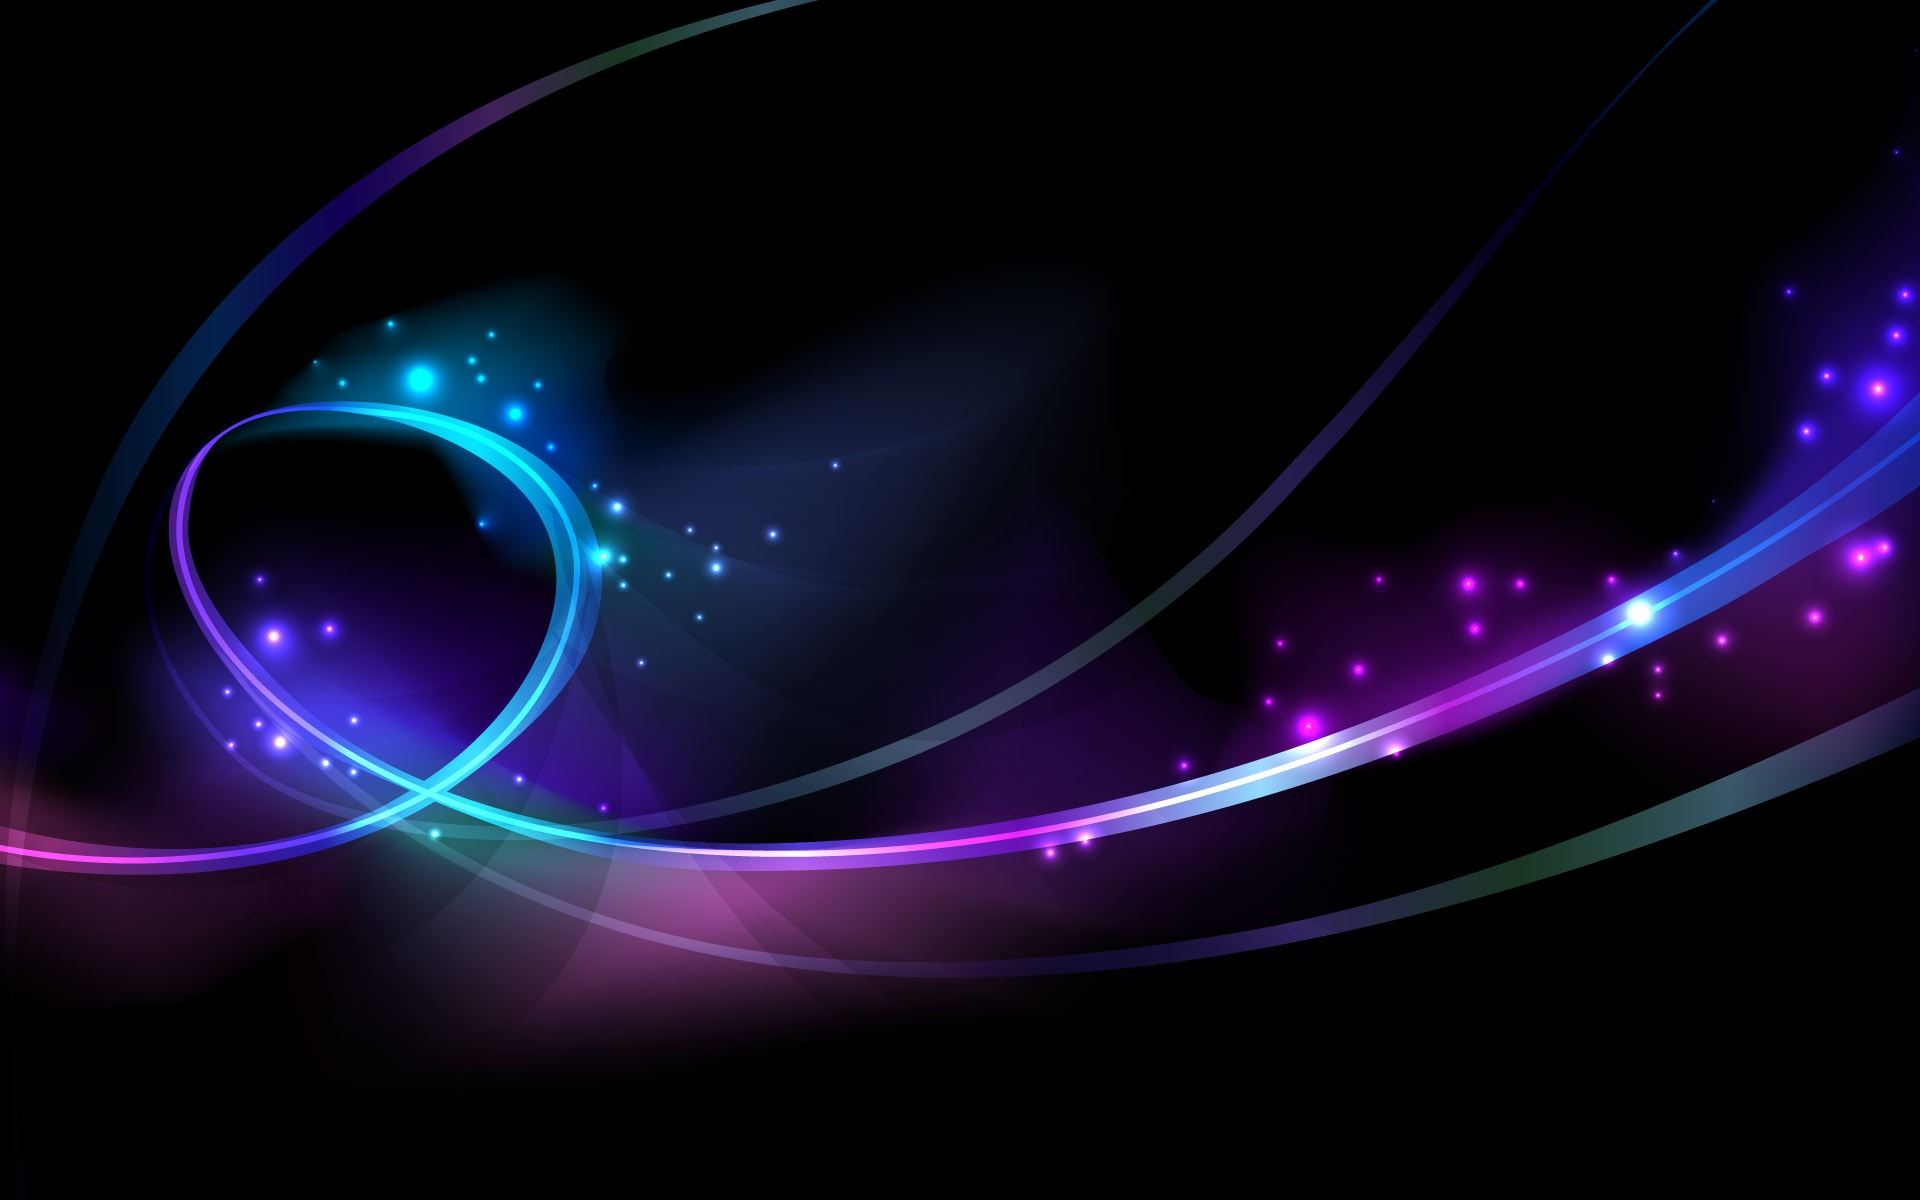 Purple and blue twirl desktop wallpaper Black Background and some 1920x1200